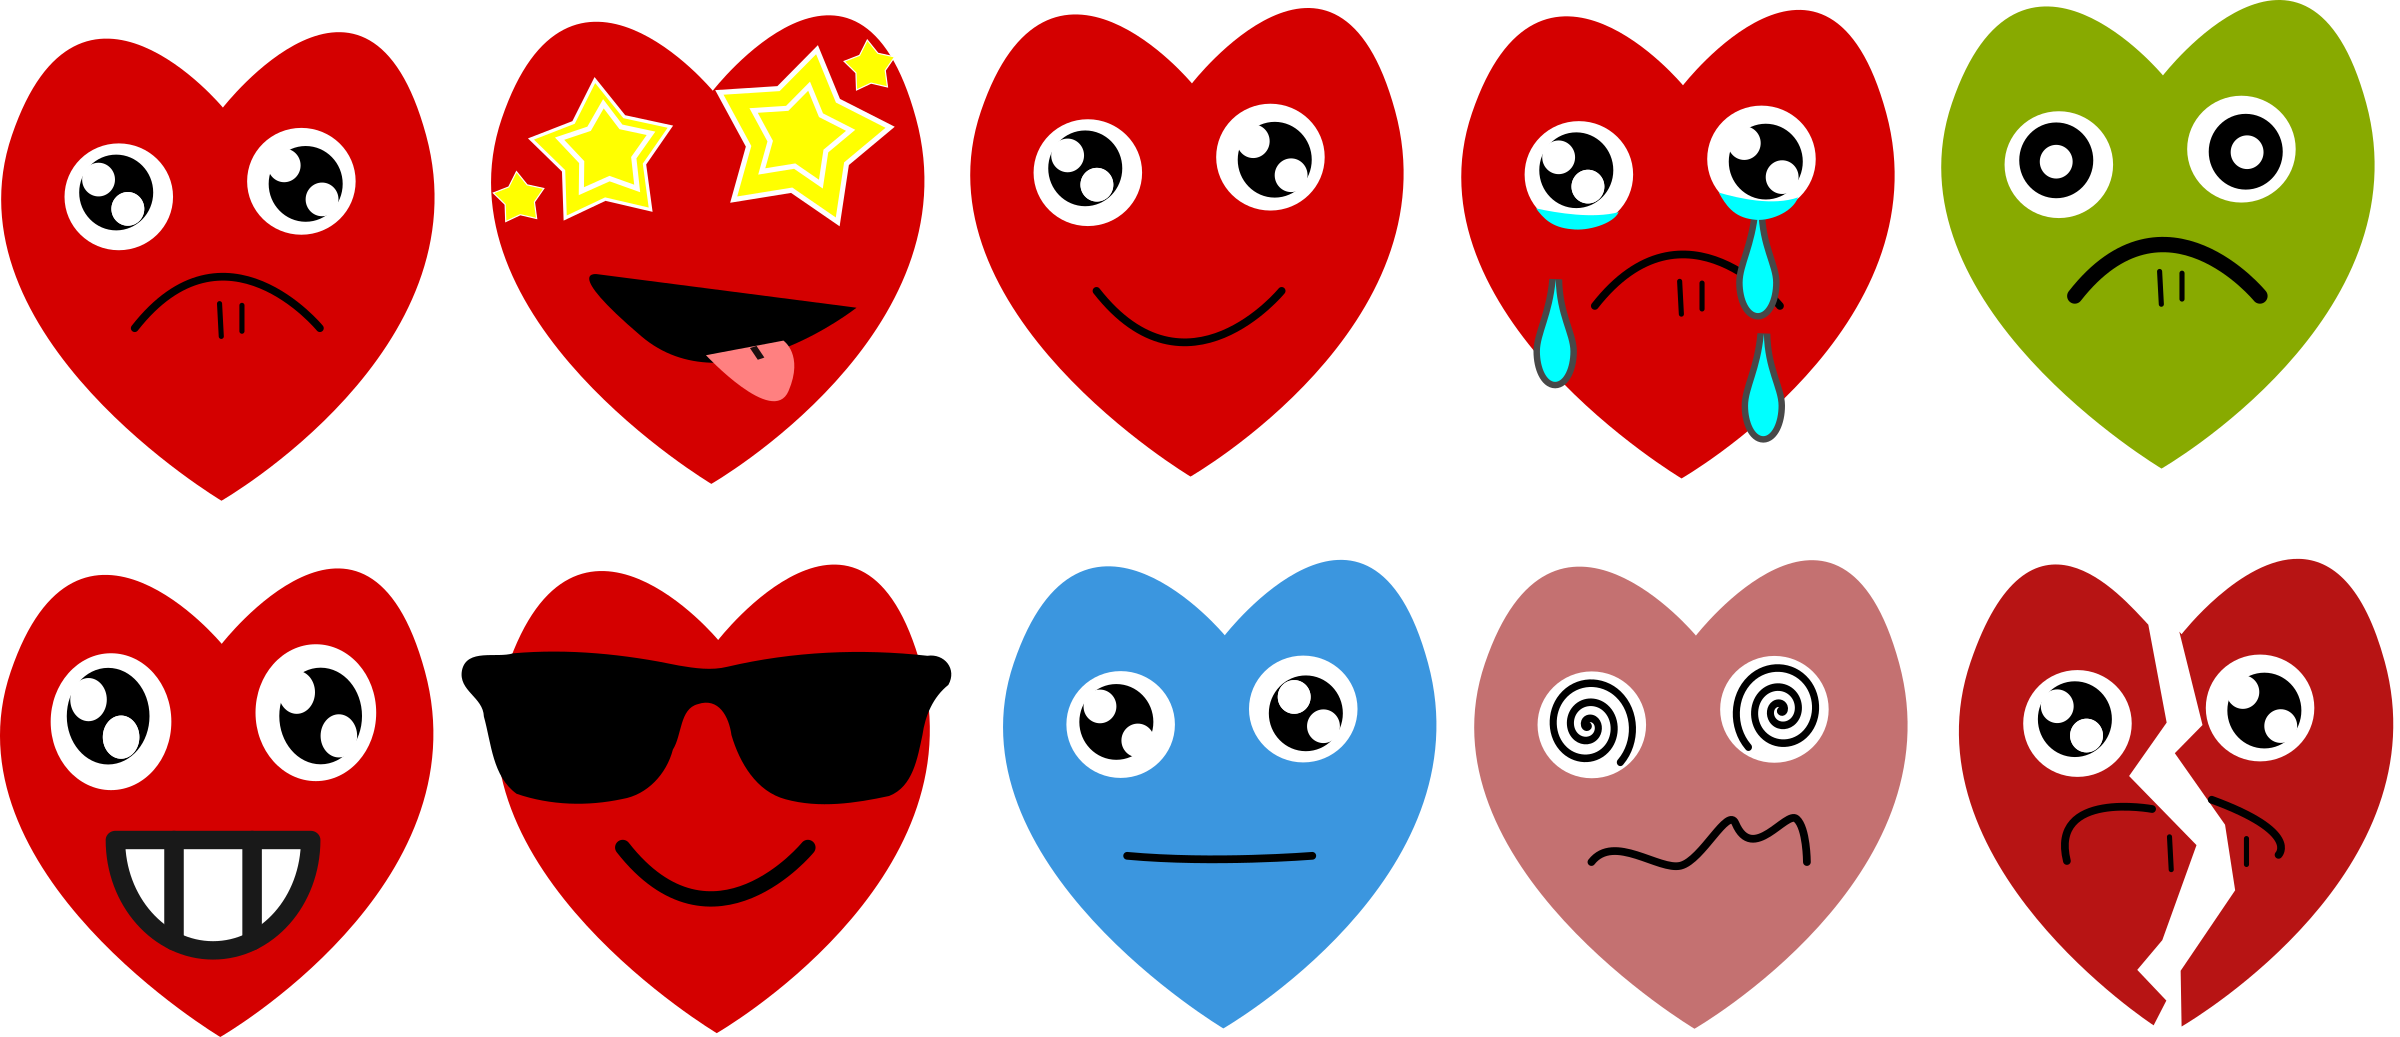 Emoji big image png. Clipart sunglasses red heart